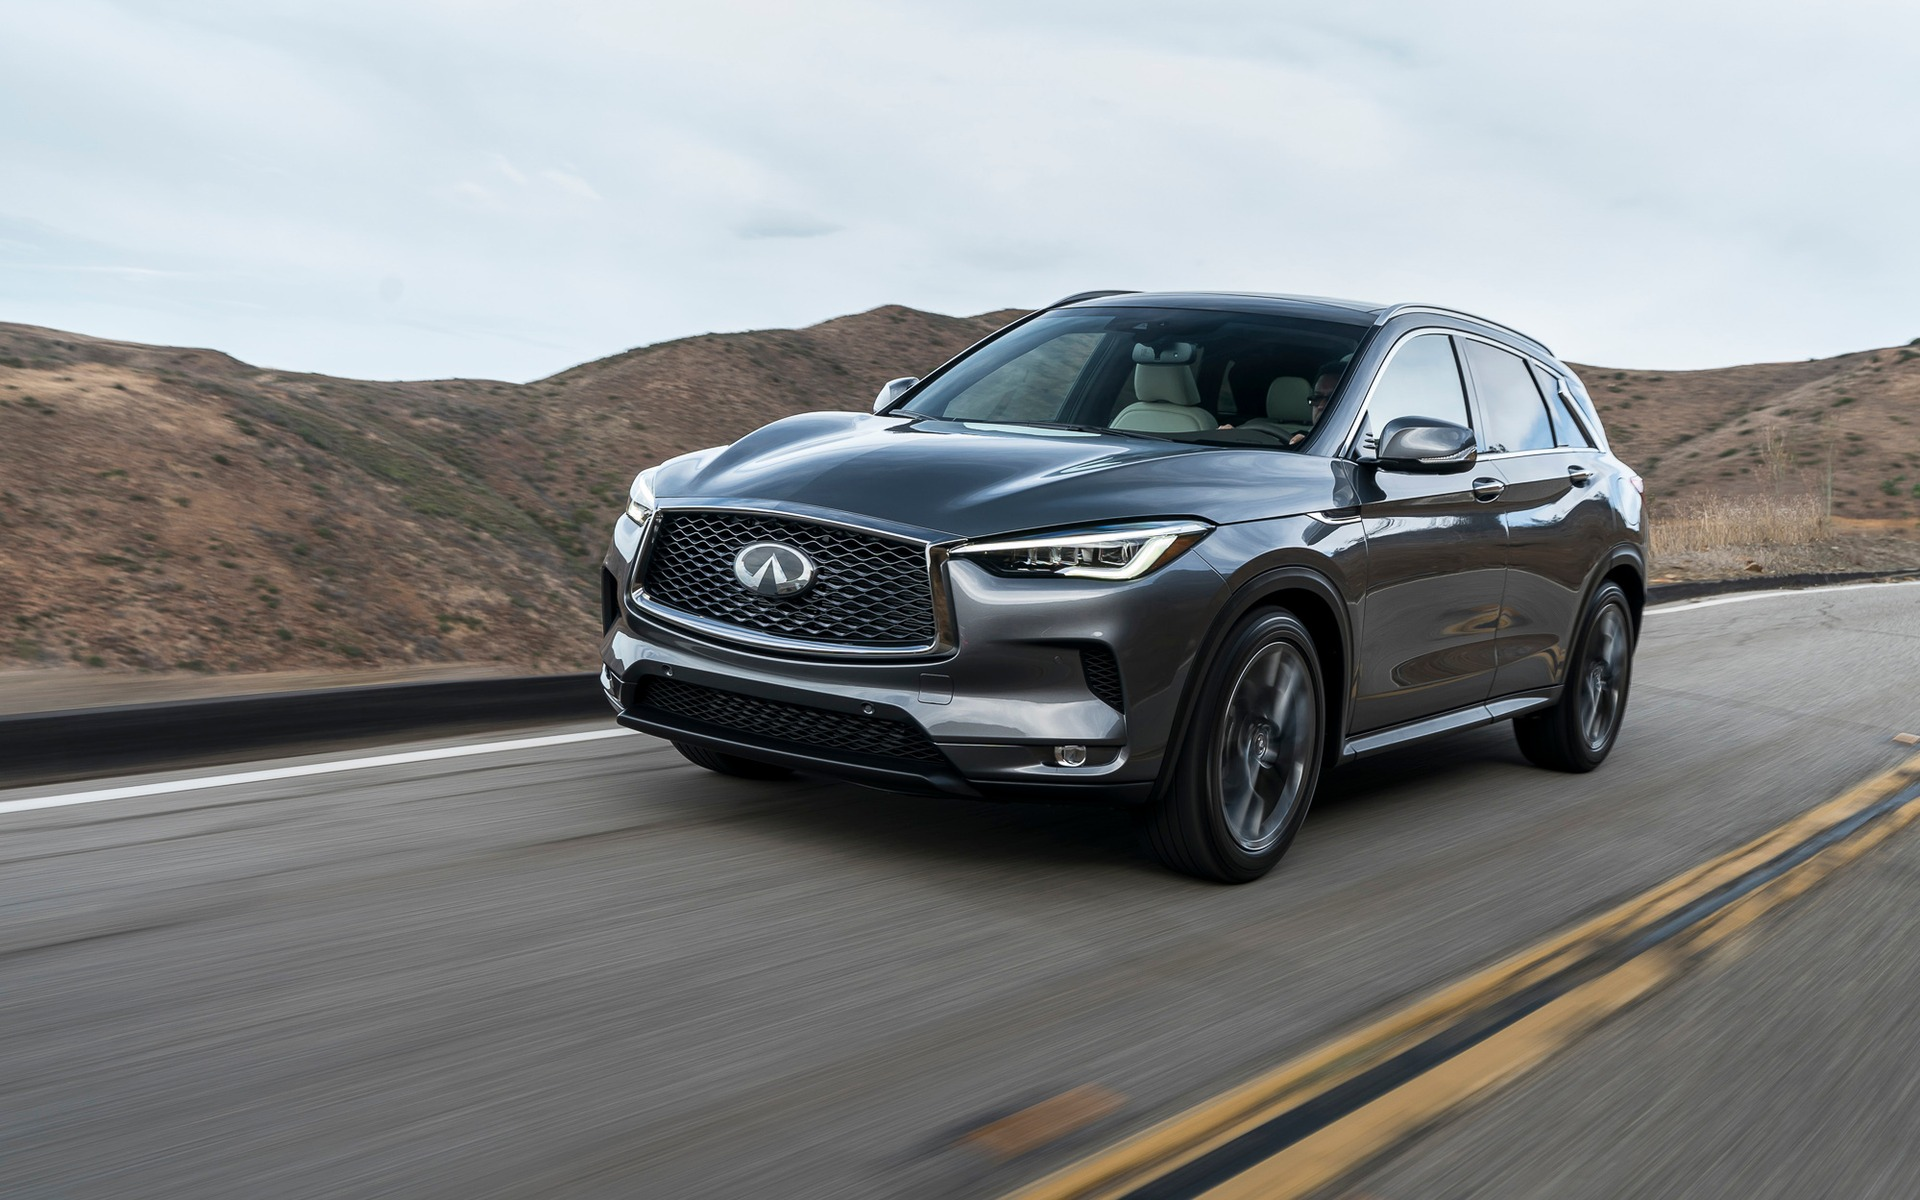 2019 infiniti qx50 innovative engine conventional suv the car guide. Black Bedroom Furniture Sets. Home Design Ideas